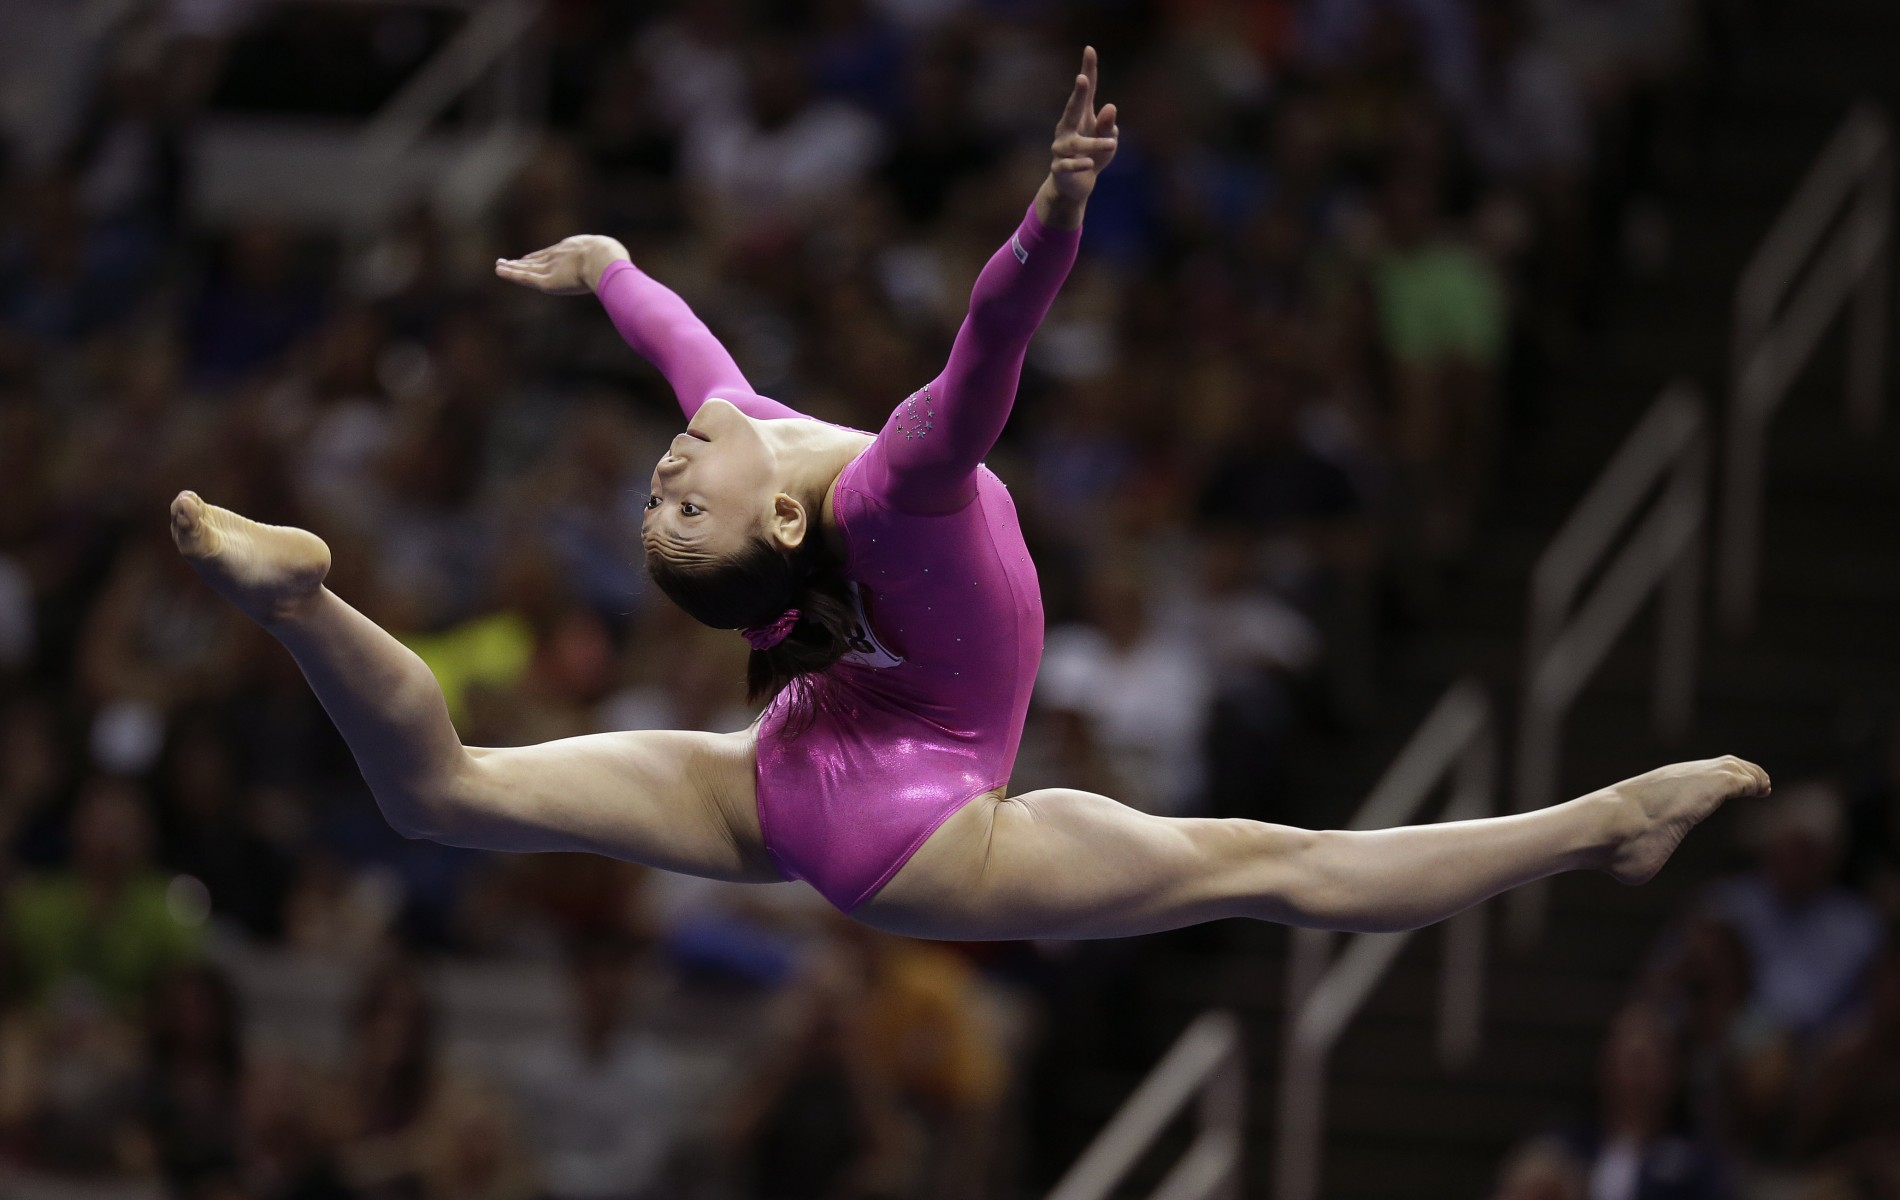 Can We Talk About Katelyn Ohashis Flawless Gymnastics